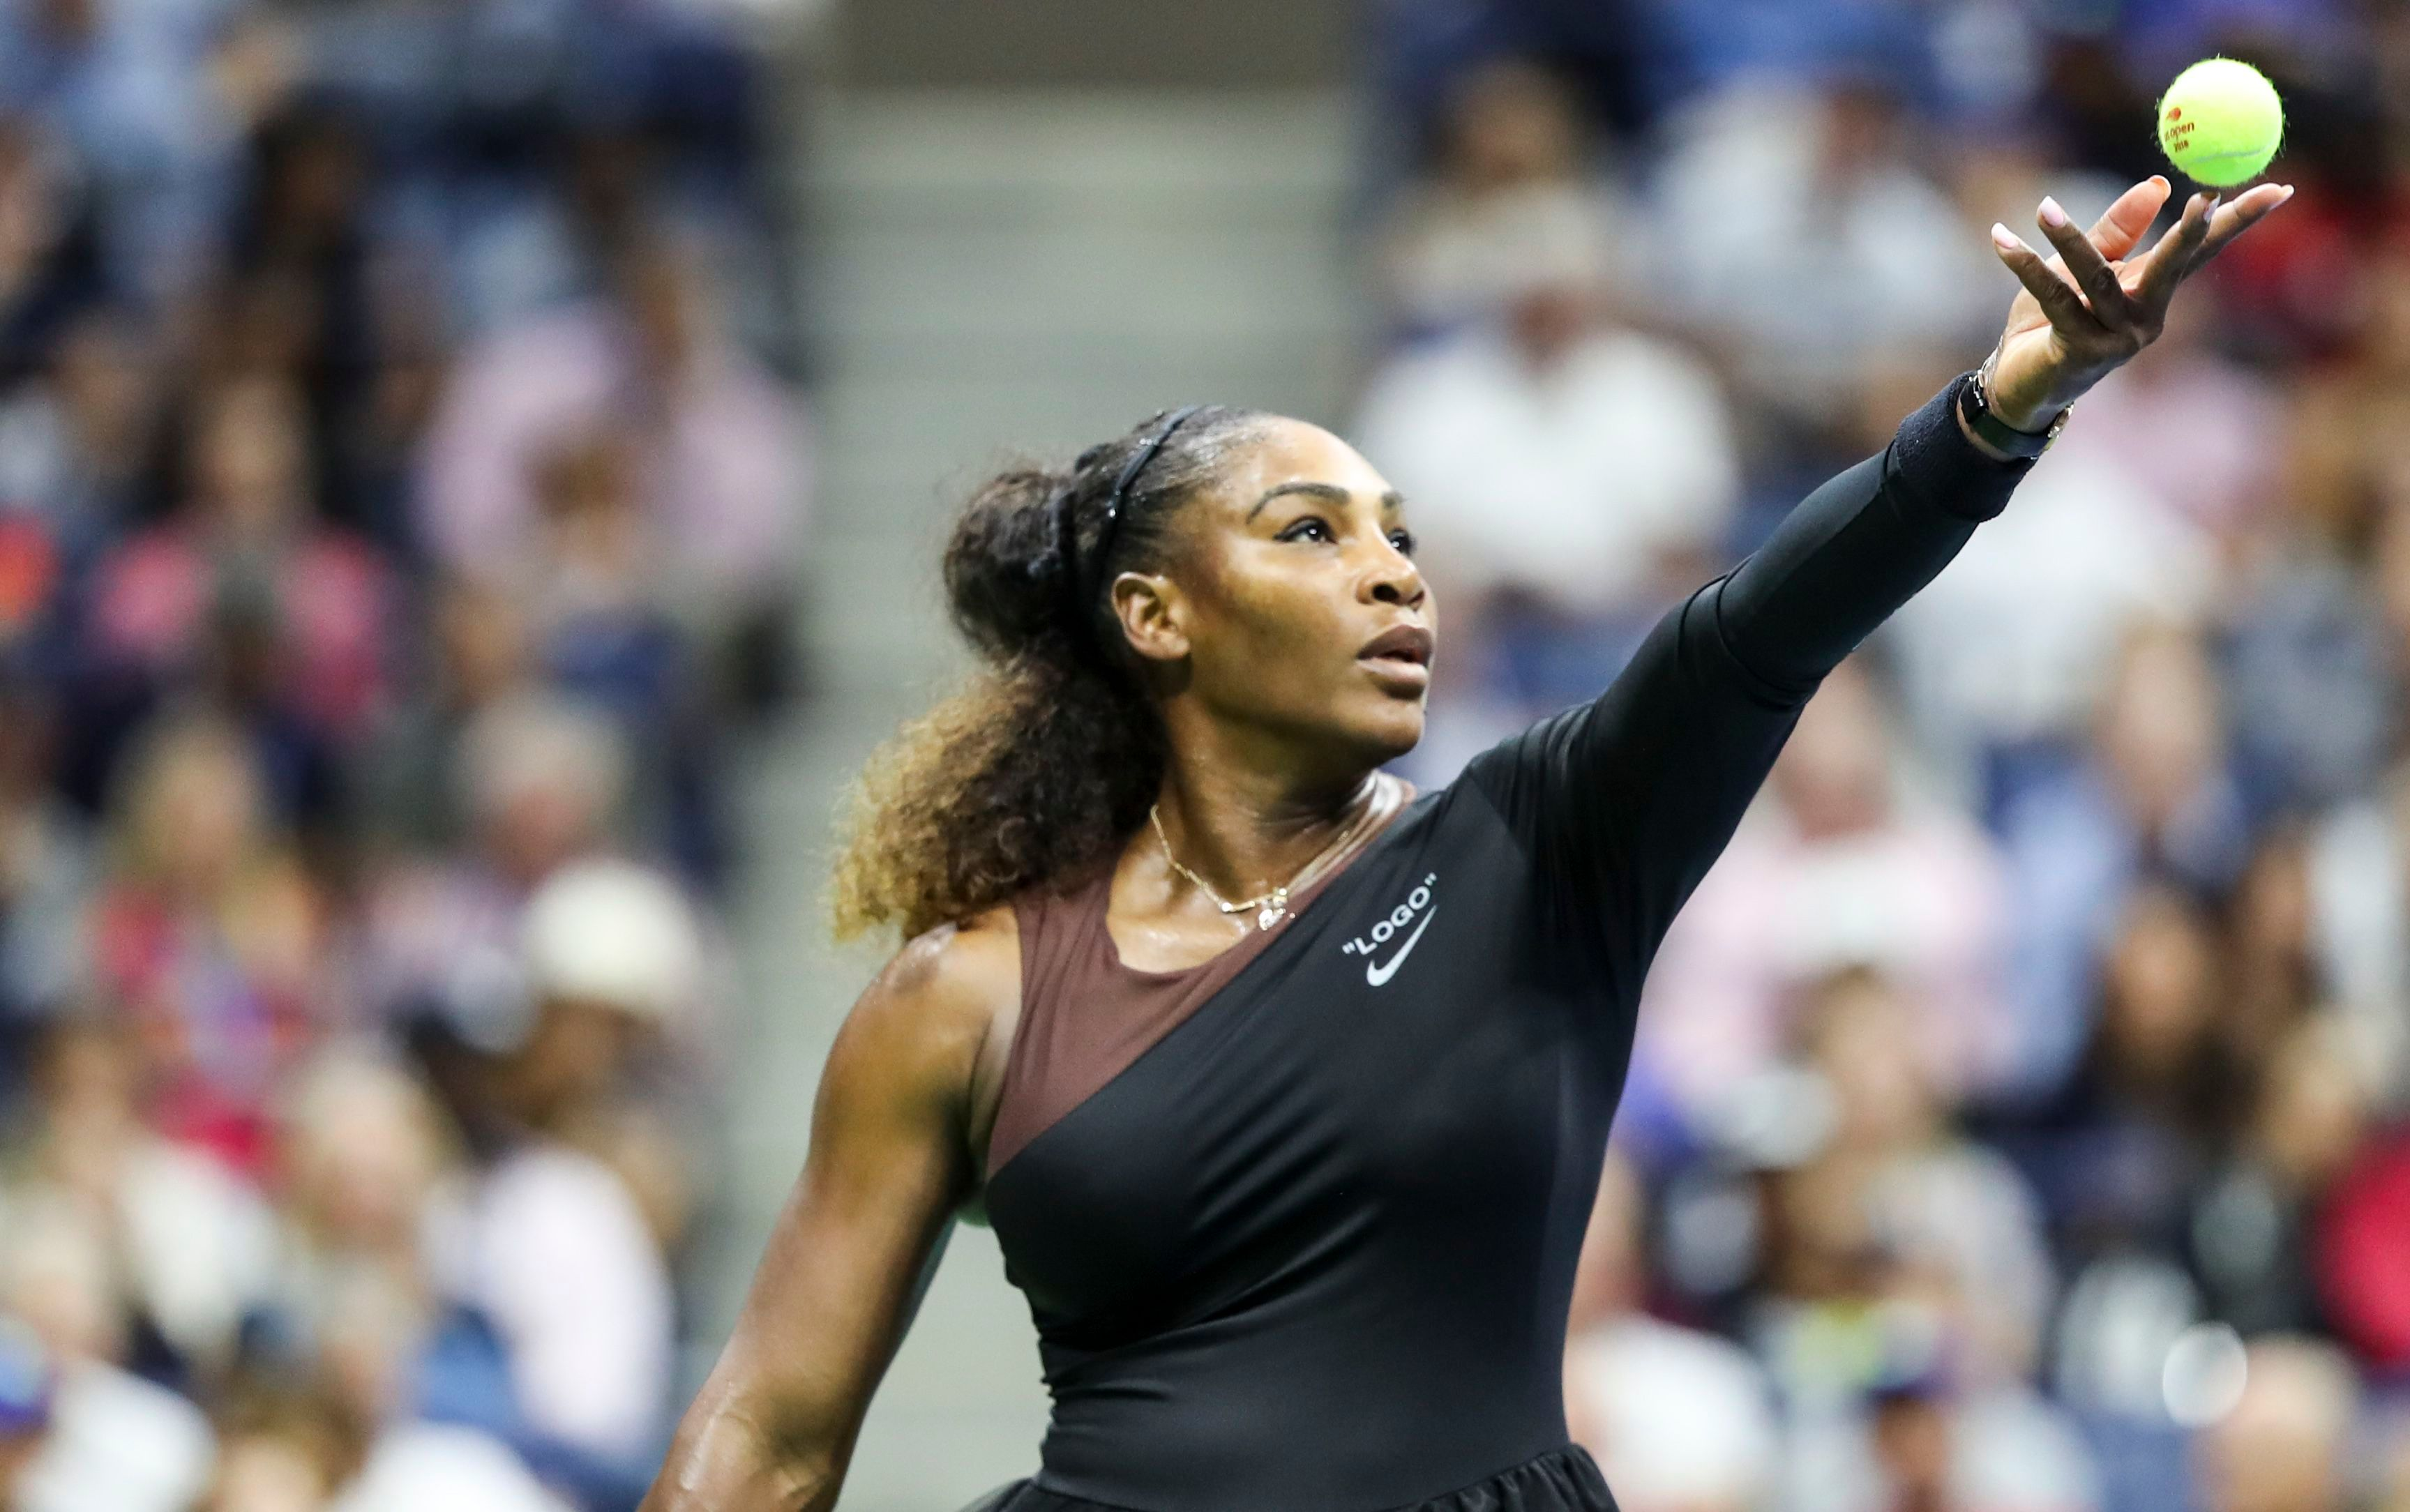 Serena Williams in action during the women's final                     U.S. Open Tennis Championships at the USTA National Tennis Center in Flushing Meadows, New York, on Sept. 8, 2018.